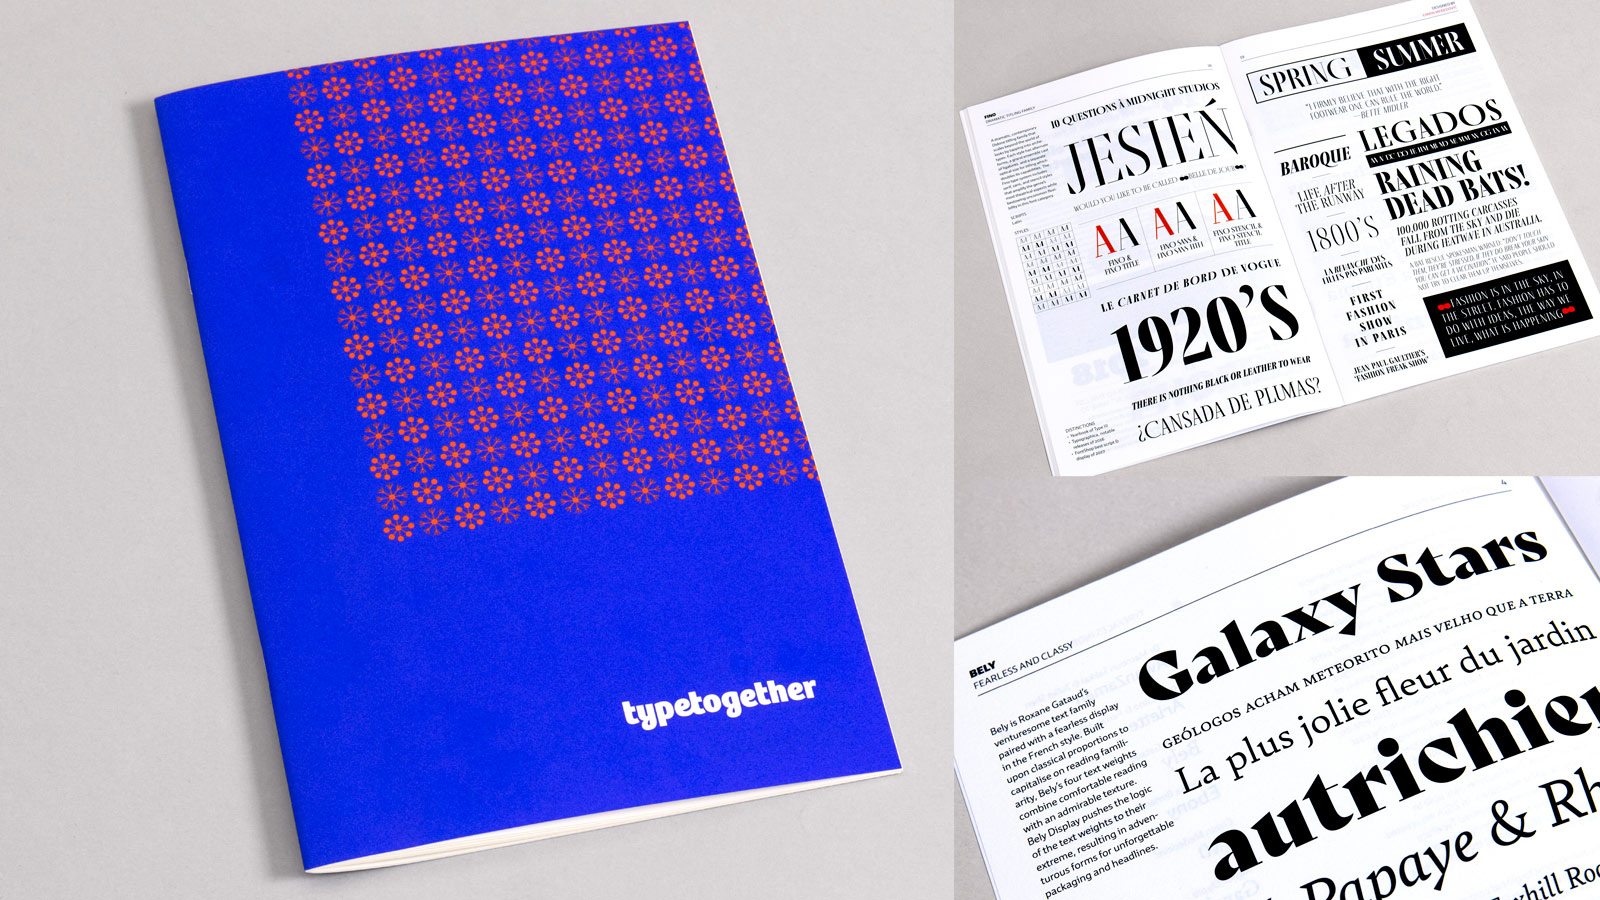 2019 TypeTogether's catalogue